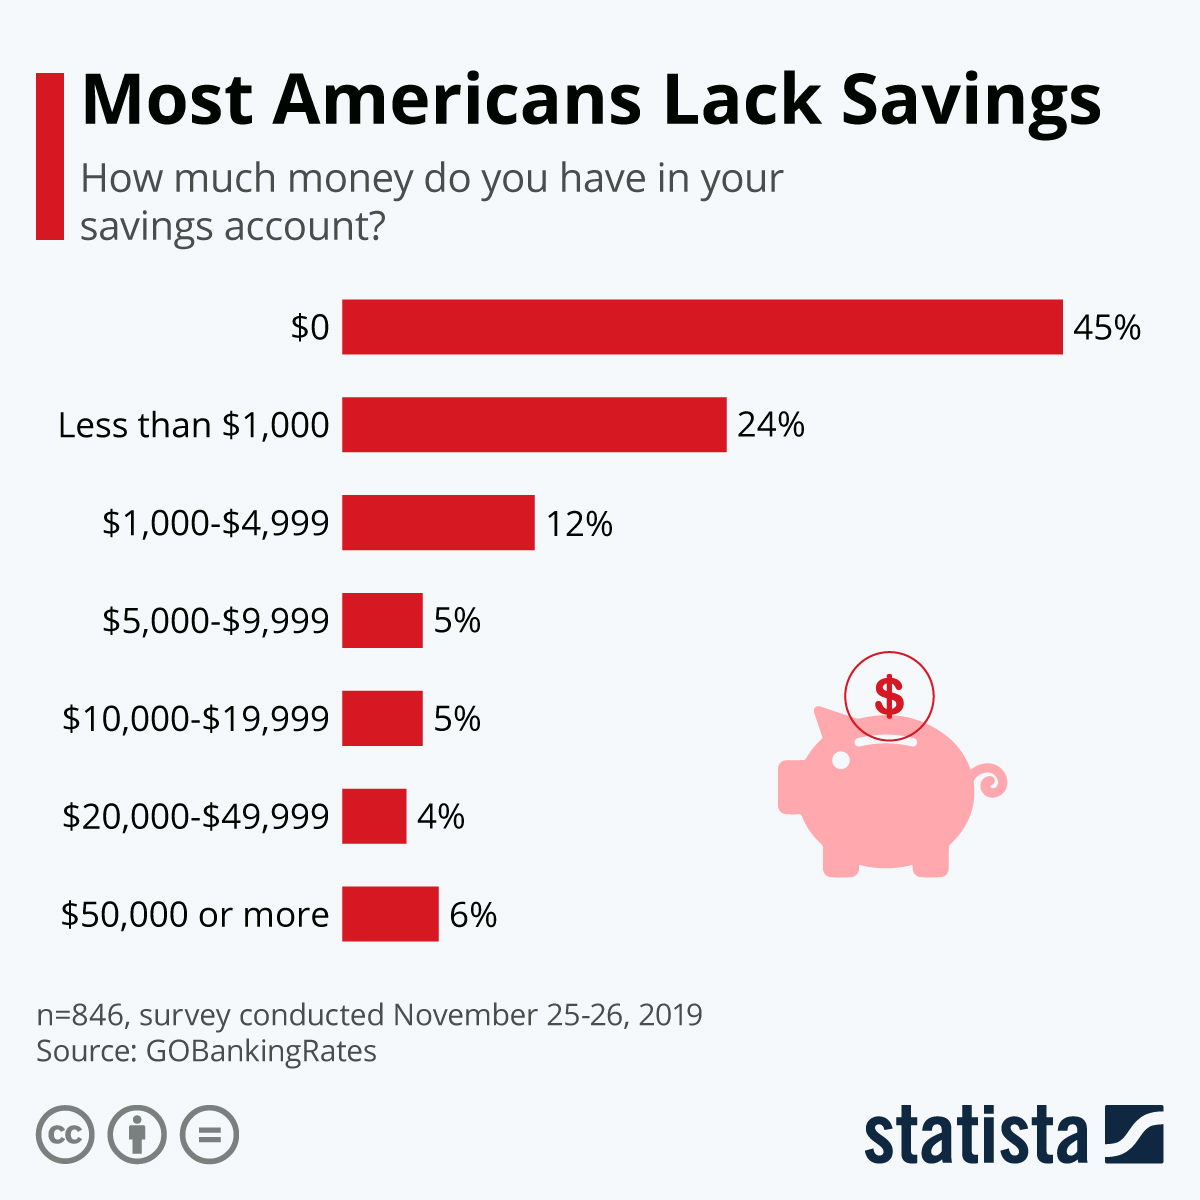 Are Americans as financially strong as portrayed?